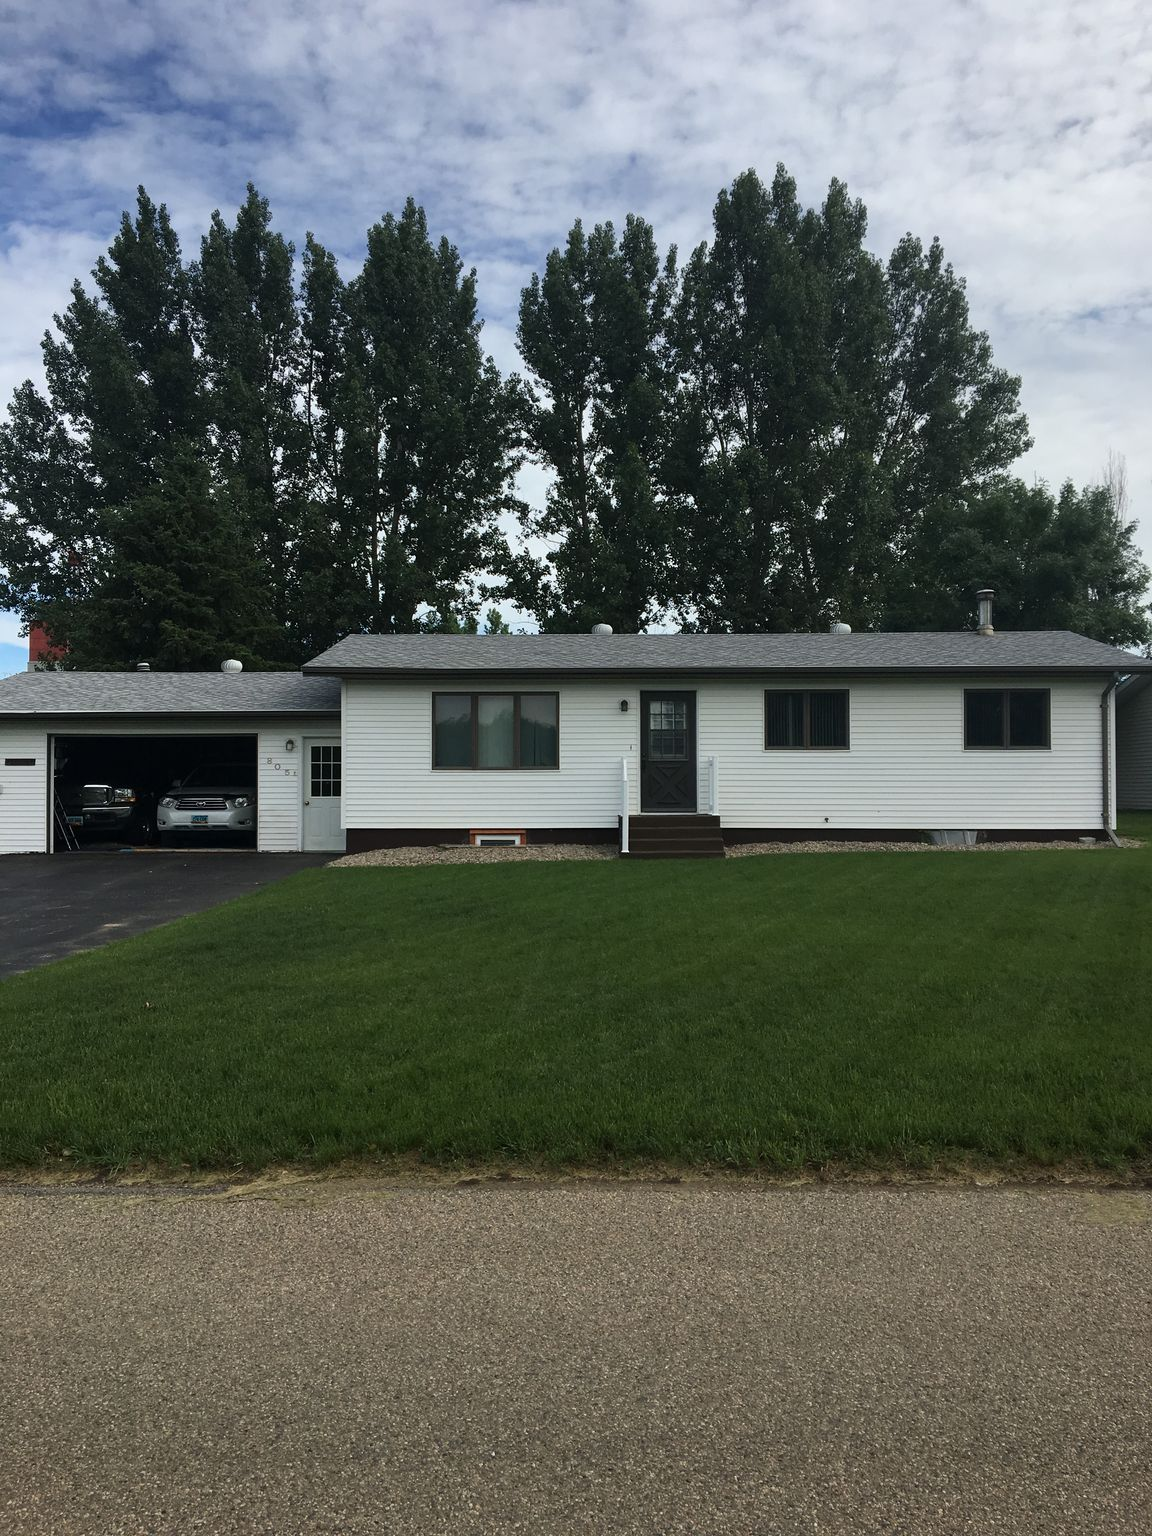 805 2nd St Se Rugby Nd 58368 23 Photos Trulia